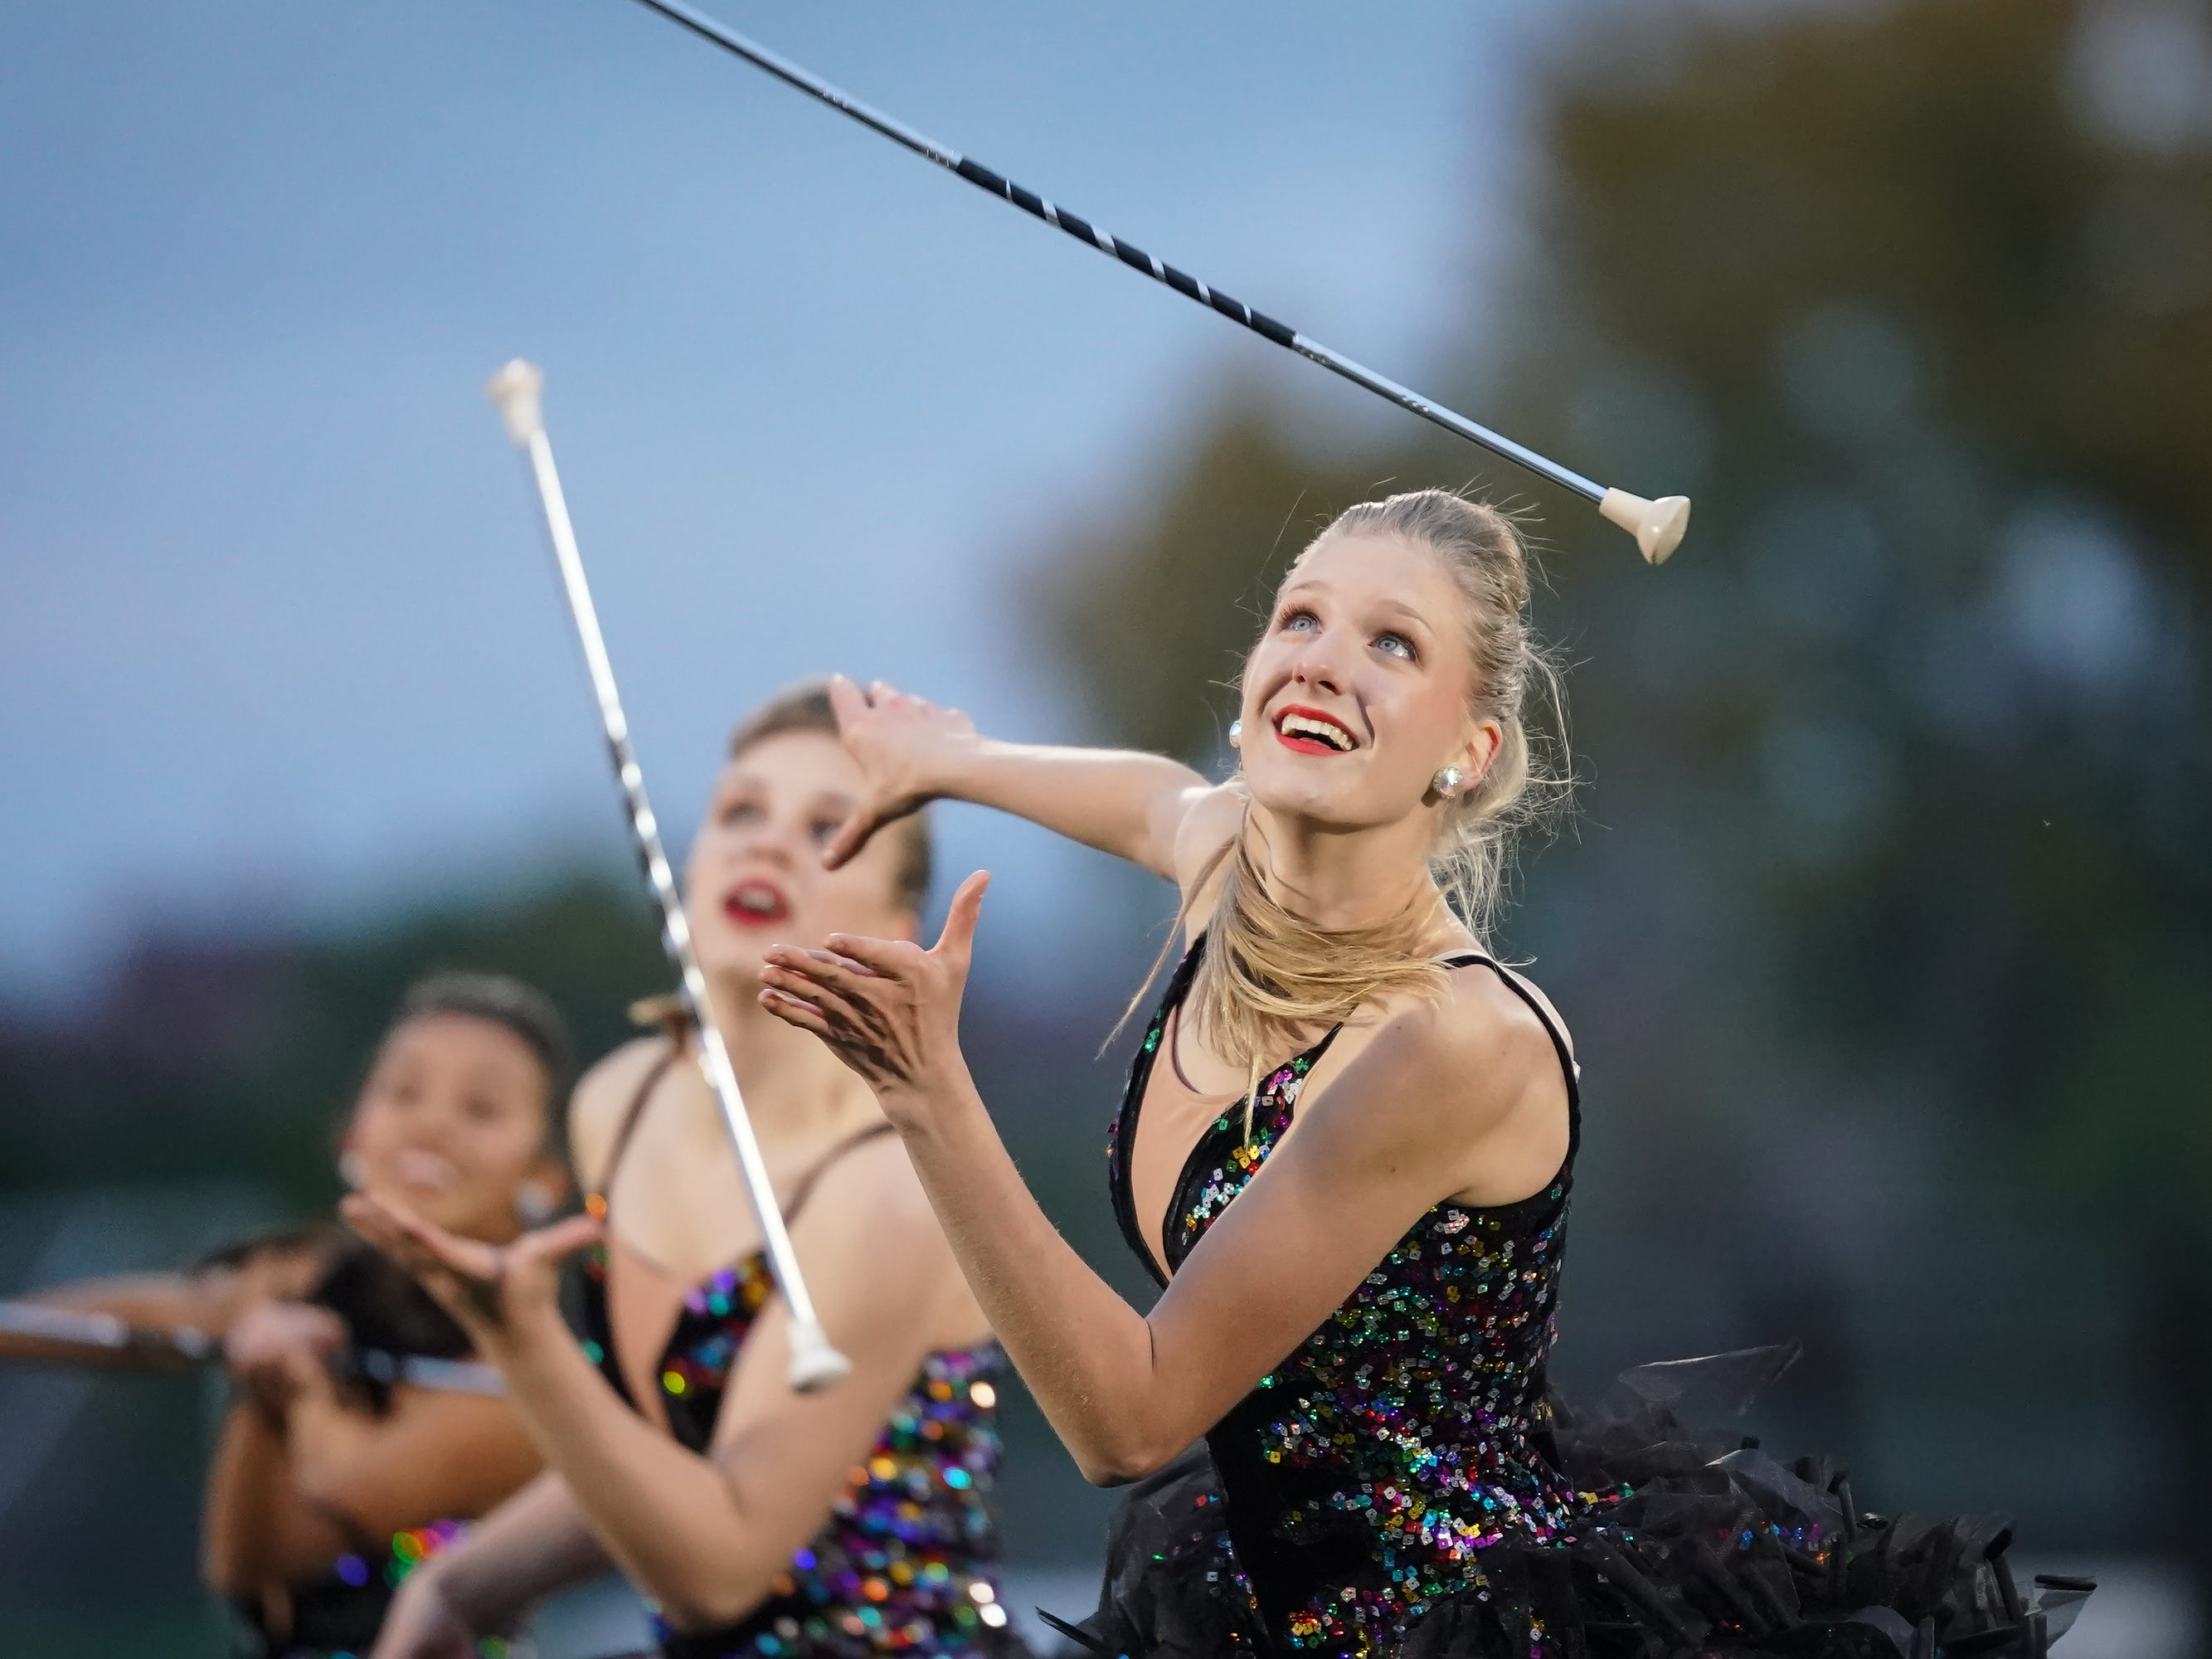 The Oshkosh West twirl team performs at half time. The Oshkosh West Wildcats hosted the Neenah Rockets in an FVA-South conference matchup Friday evening, October 12, 2018 at J. J. Keller Field at Titan Stadium.